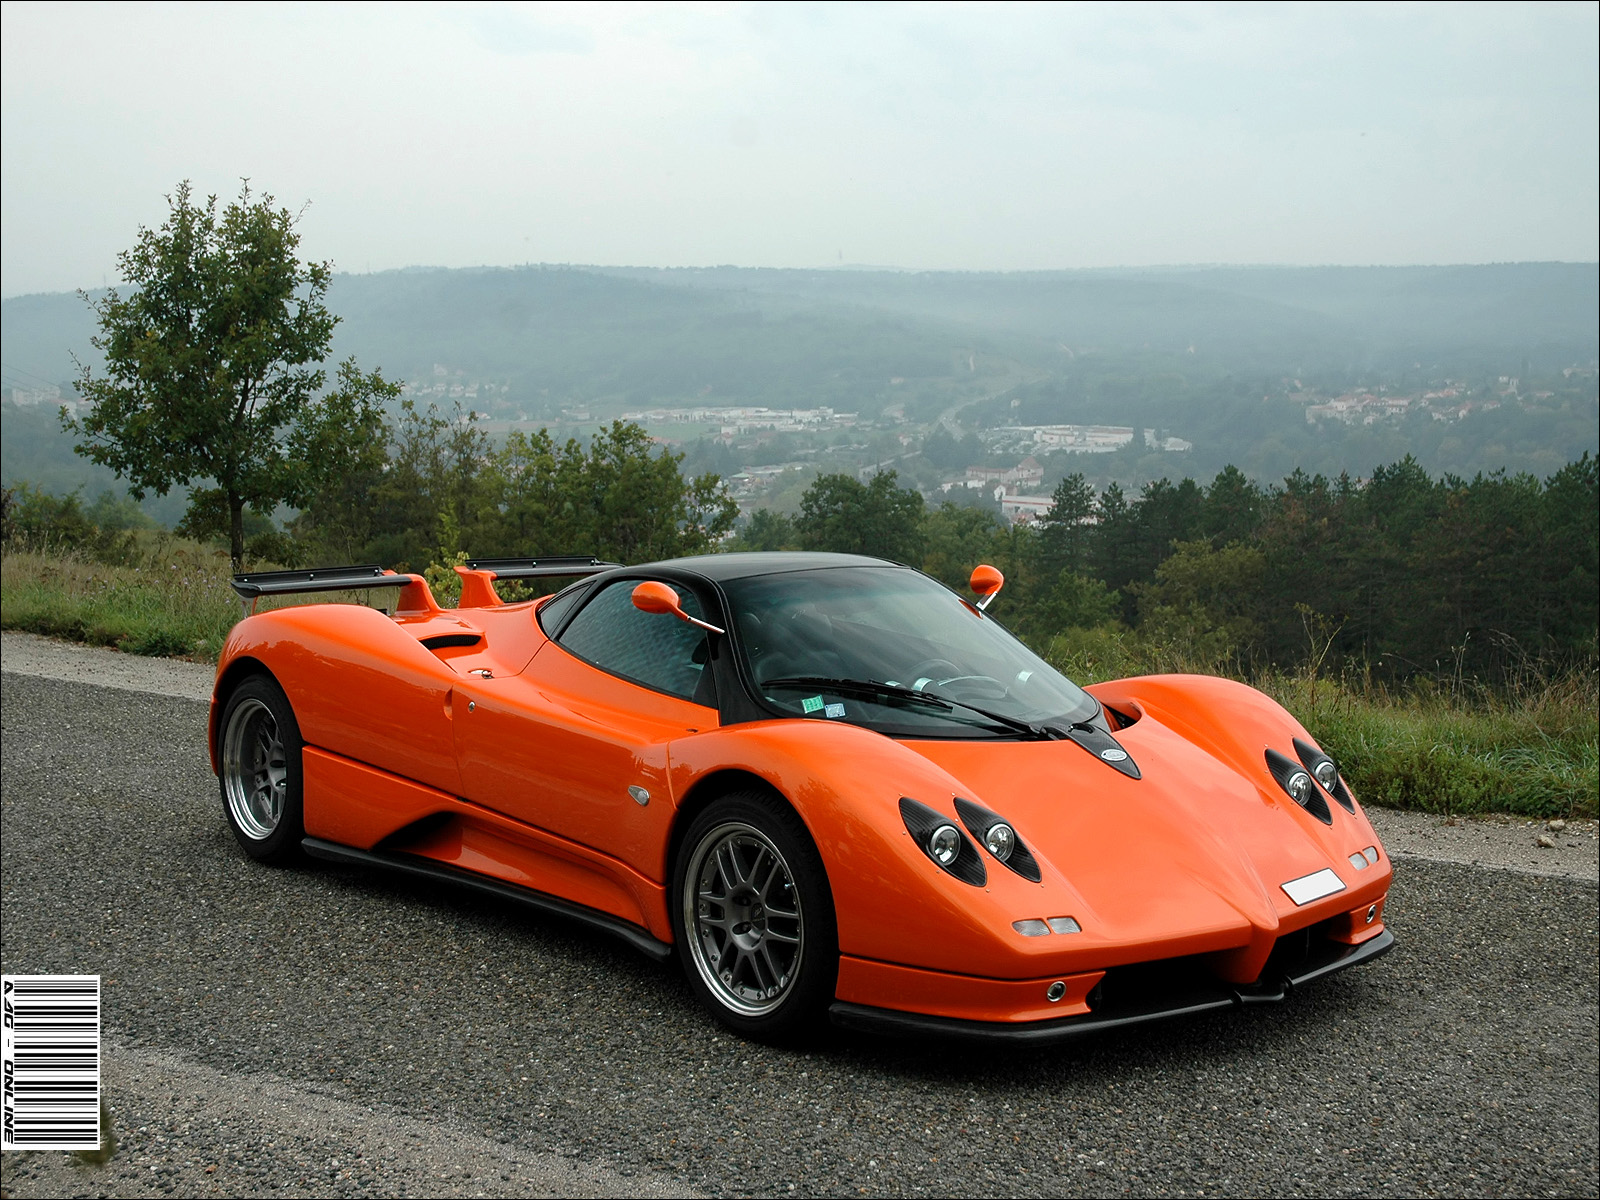 prototype 0 stunning pagani zonda c12s for sale. Black Bedroom Furniture Sets. Home Design Ideas